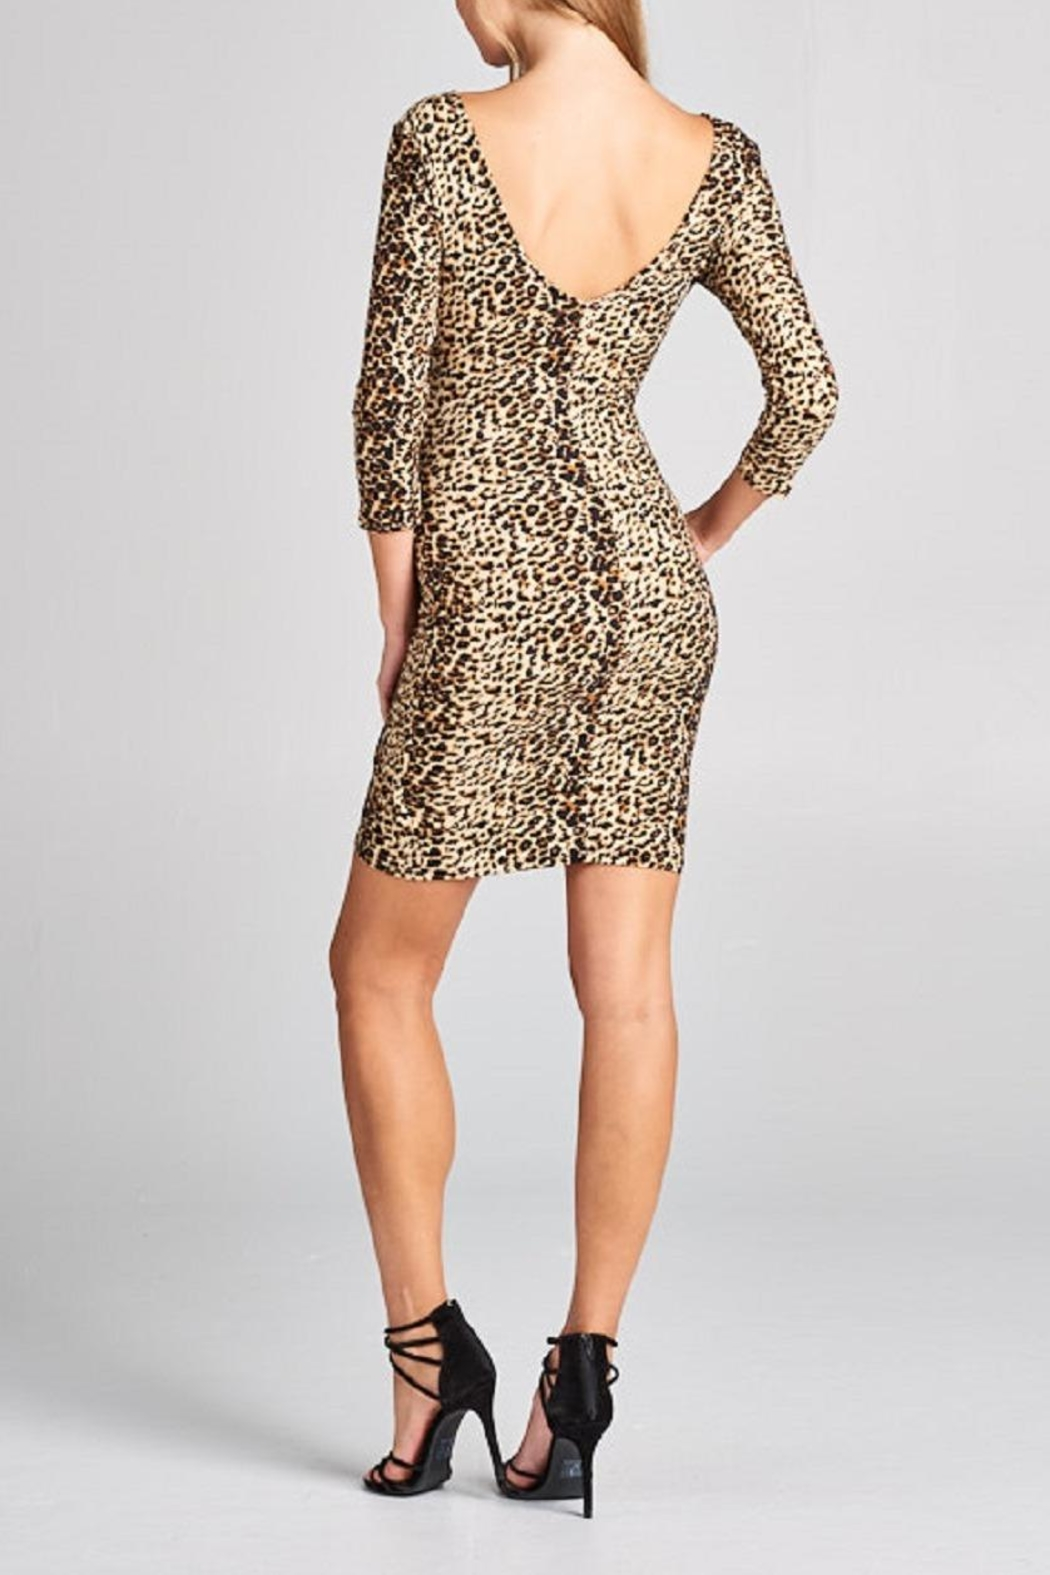 DNA Couture Animal Print Dress - Back Cropped Image